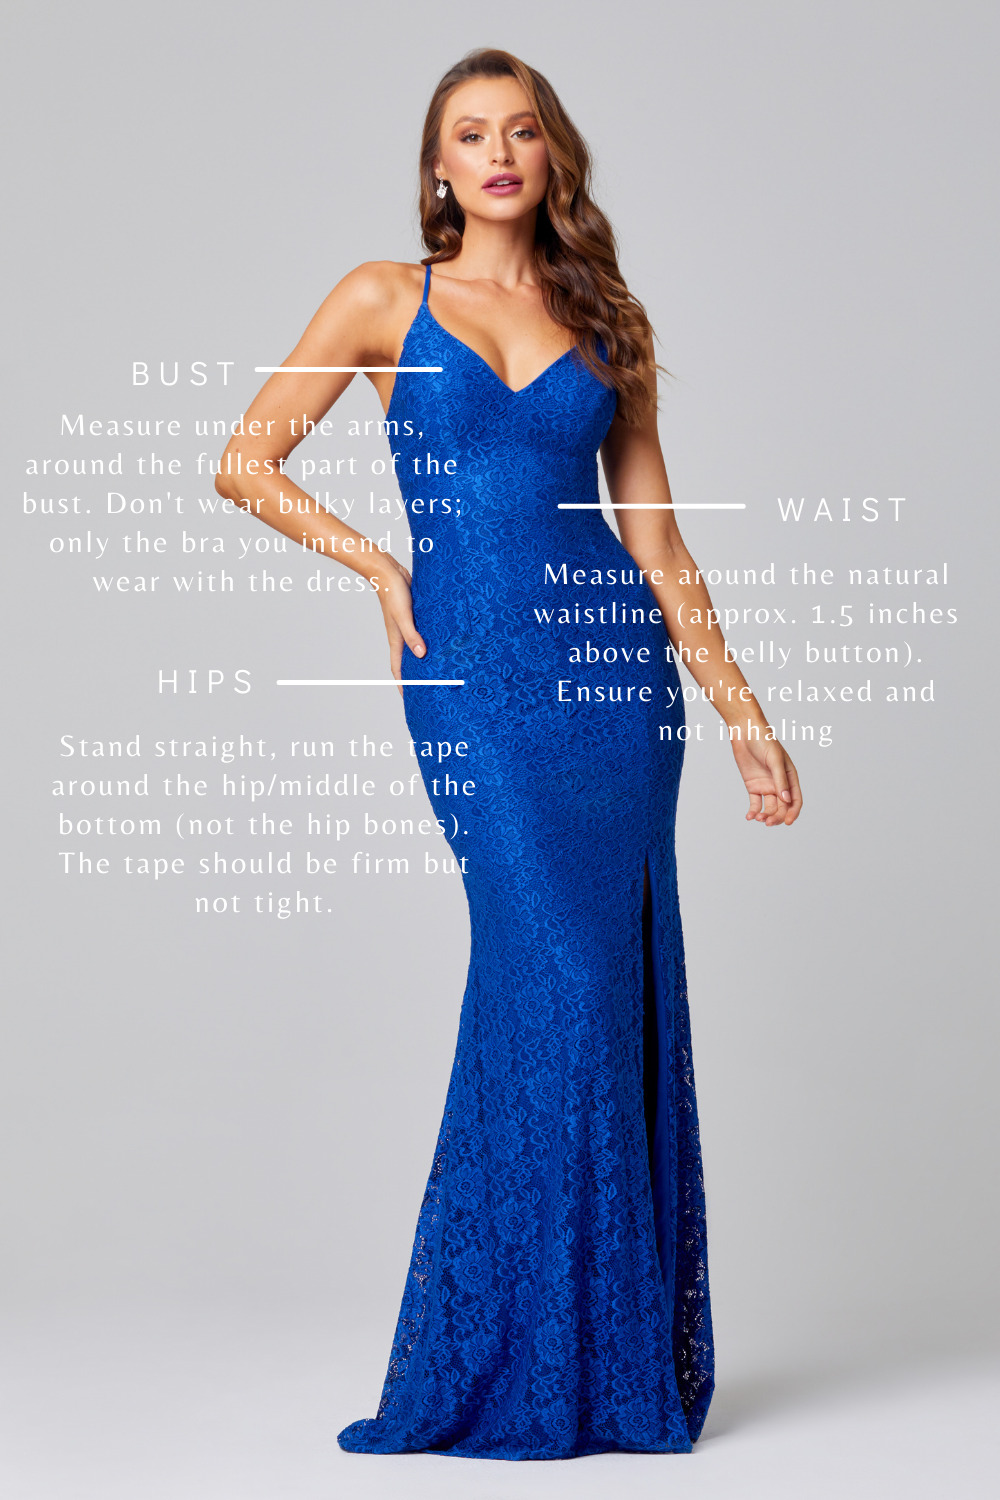 How to measure yourself for your dress